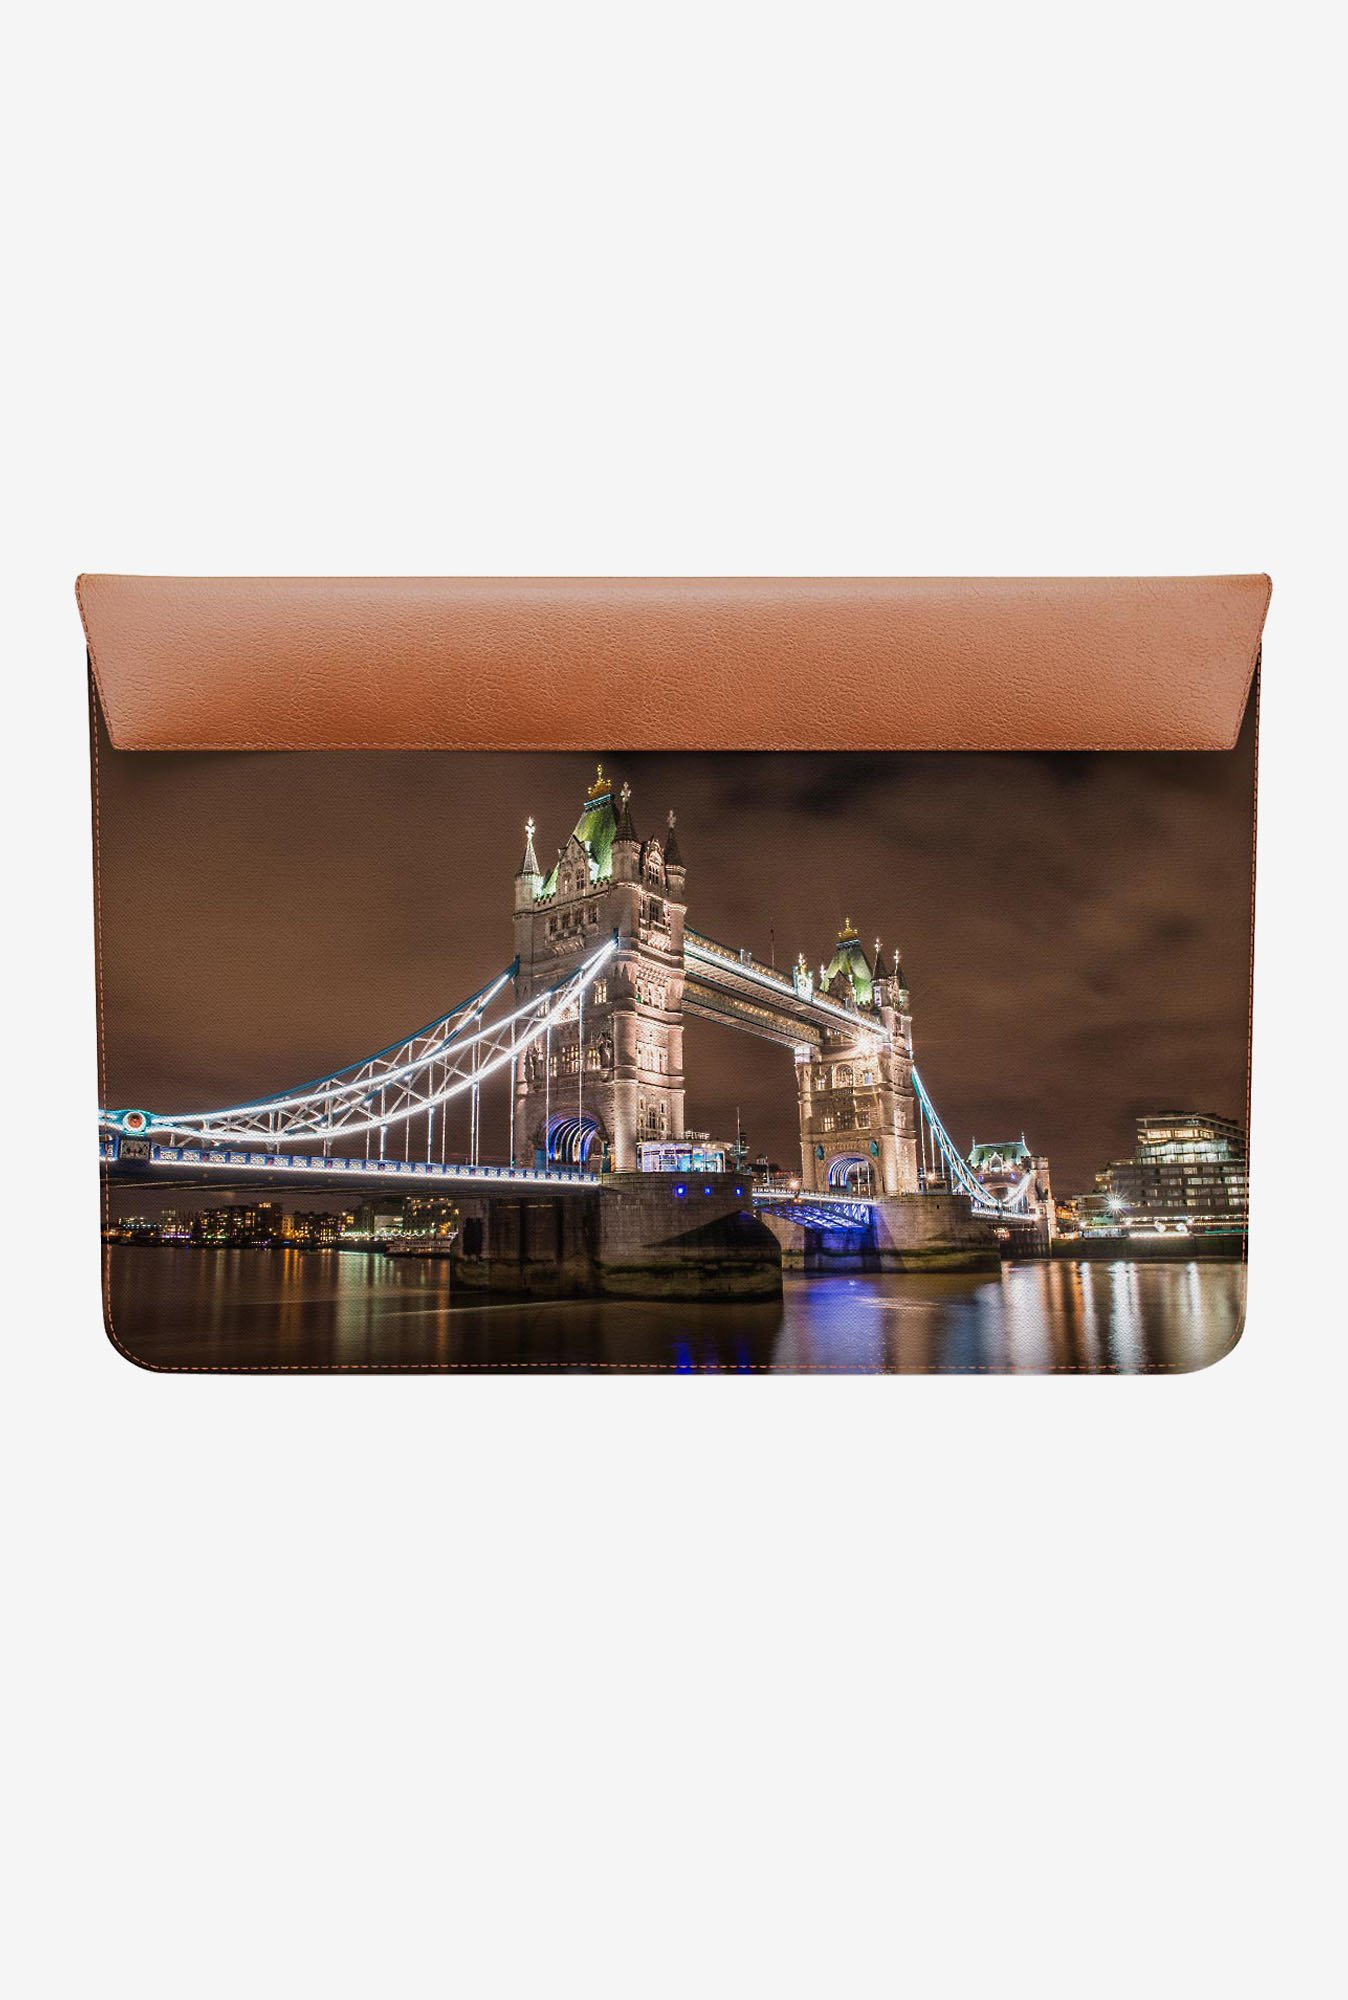 DailyObjects Bridge Lit up MacBook 12 Envelope Sleeve